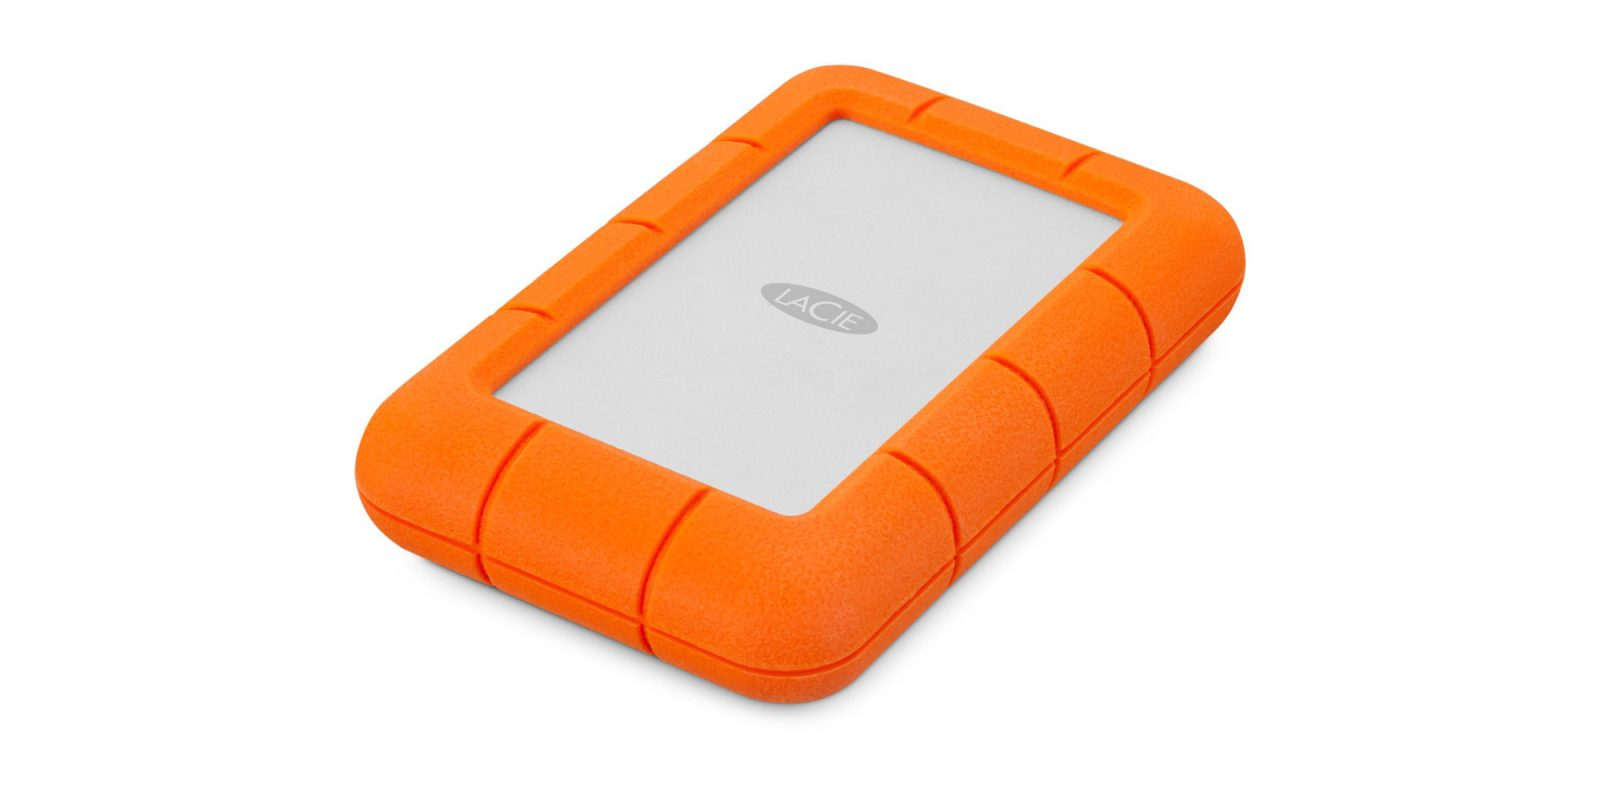 LaCie's drop, crush, and water-resistant 4TB USB 3.0 External HDD falls to $120